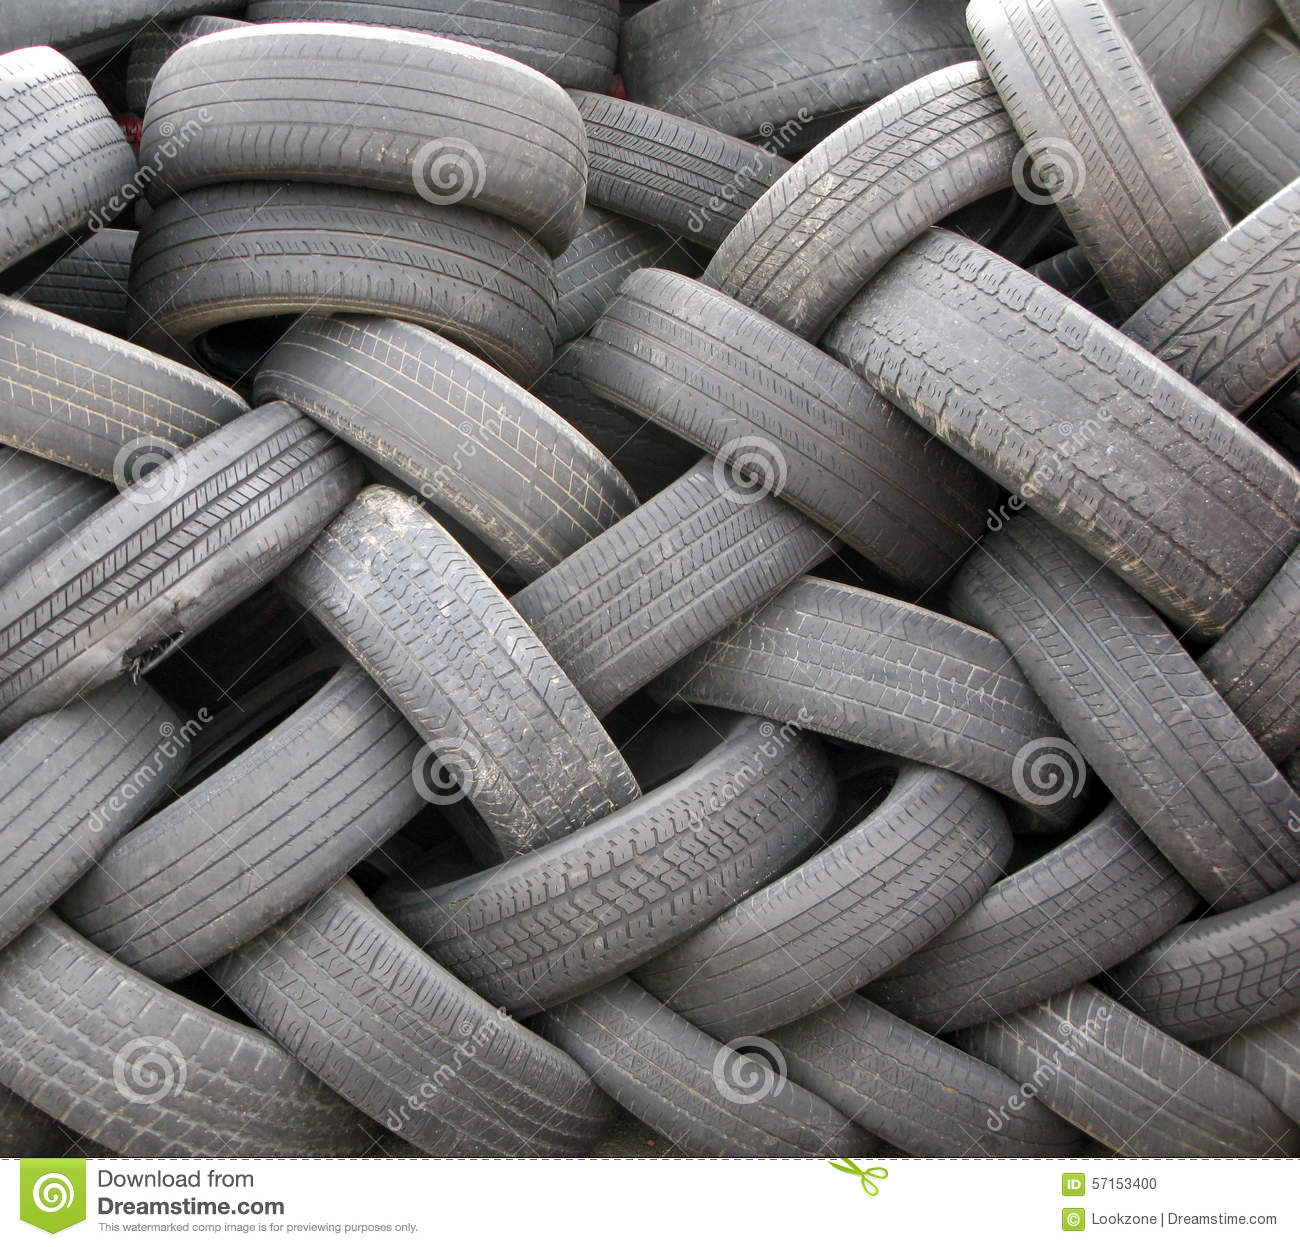 A Pile of Used Discarded Tires.